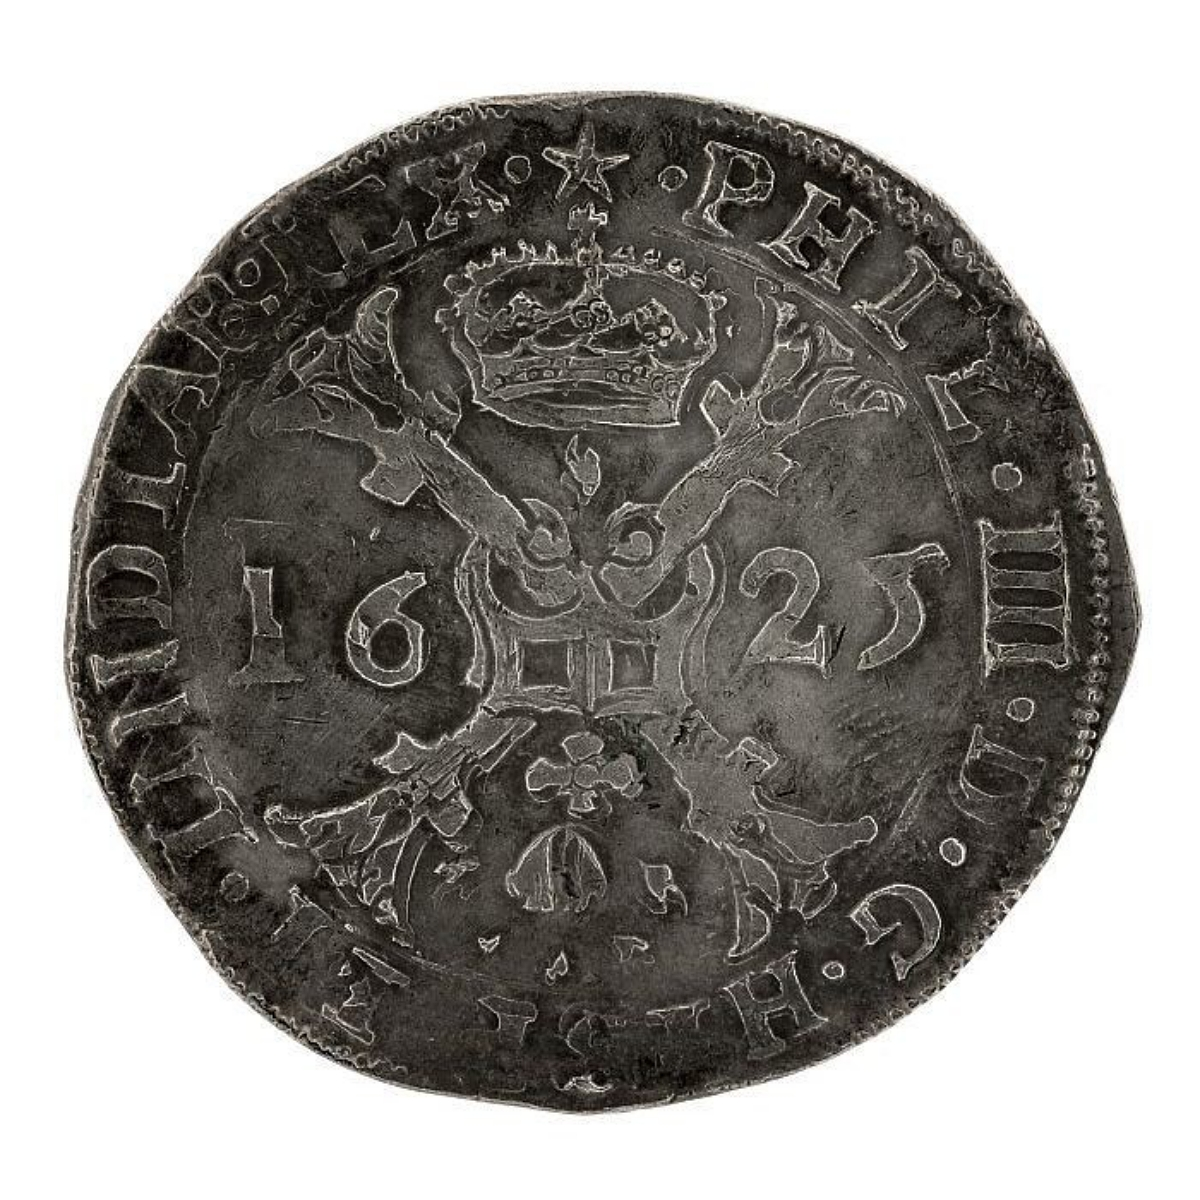 Spanish Dutch patagon coin worth 8 reales